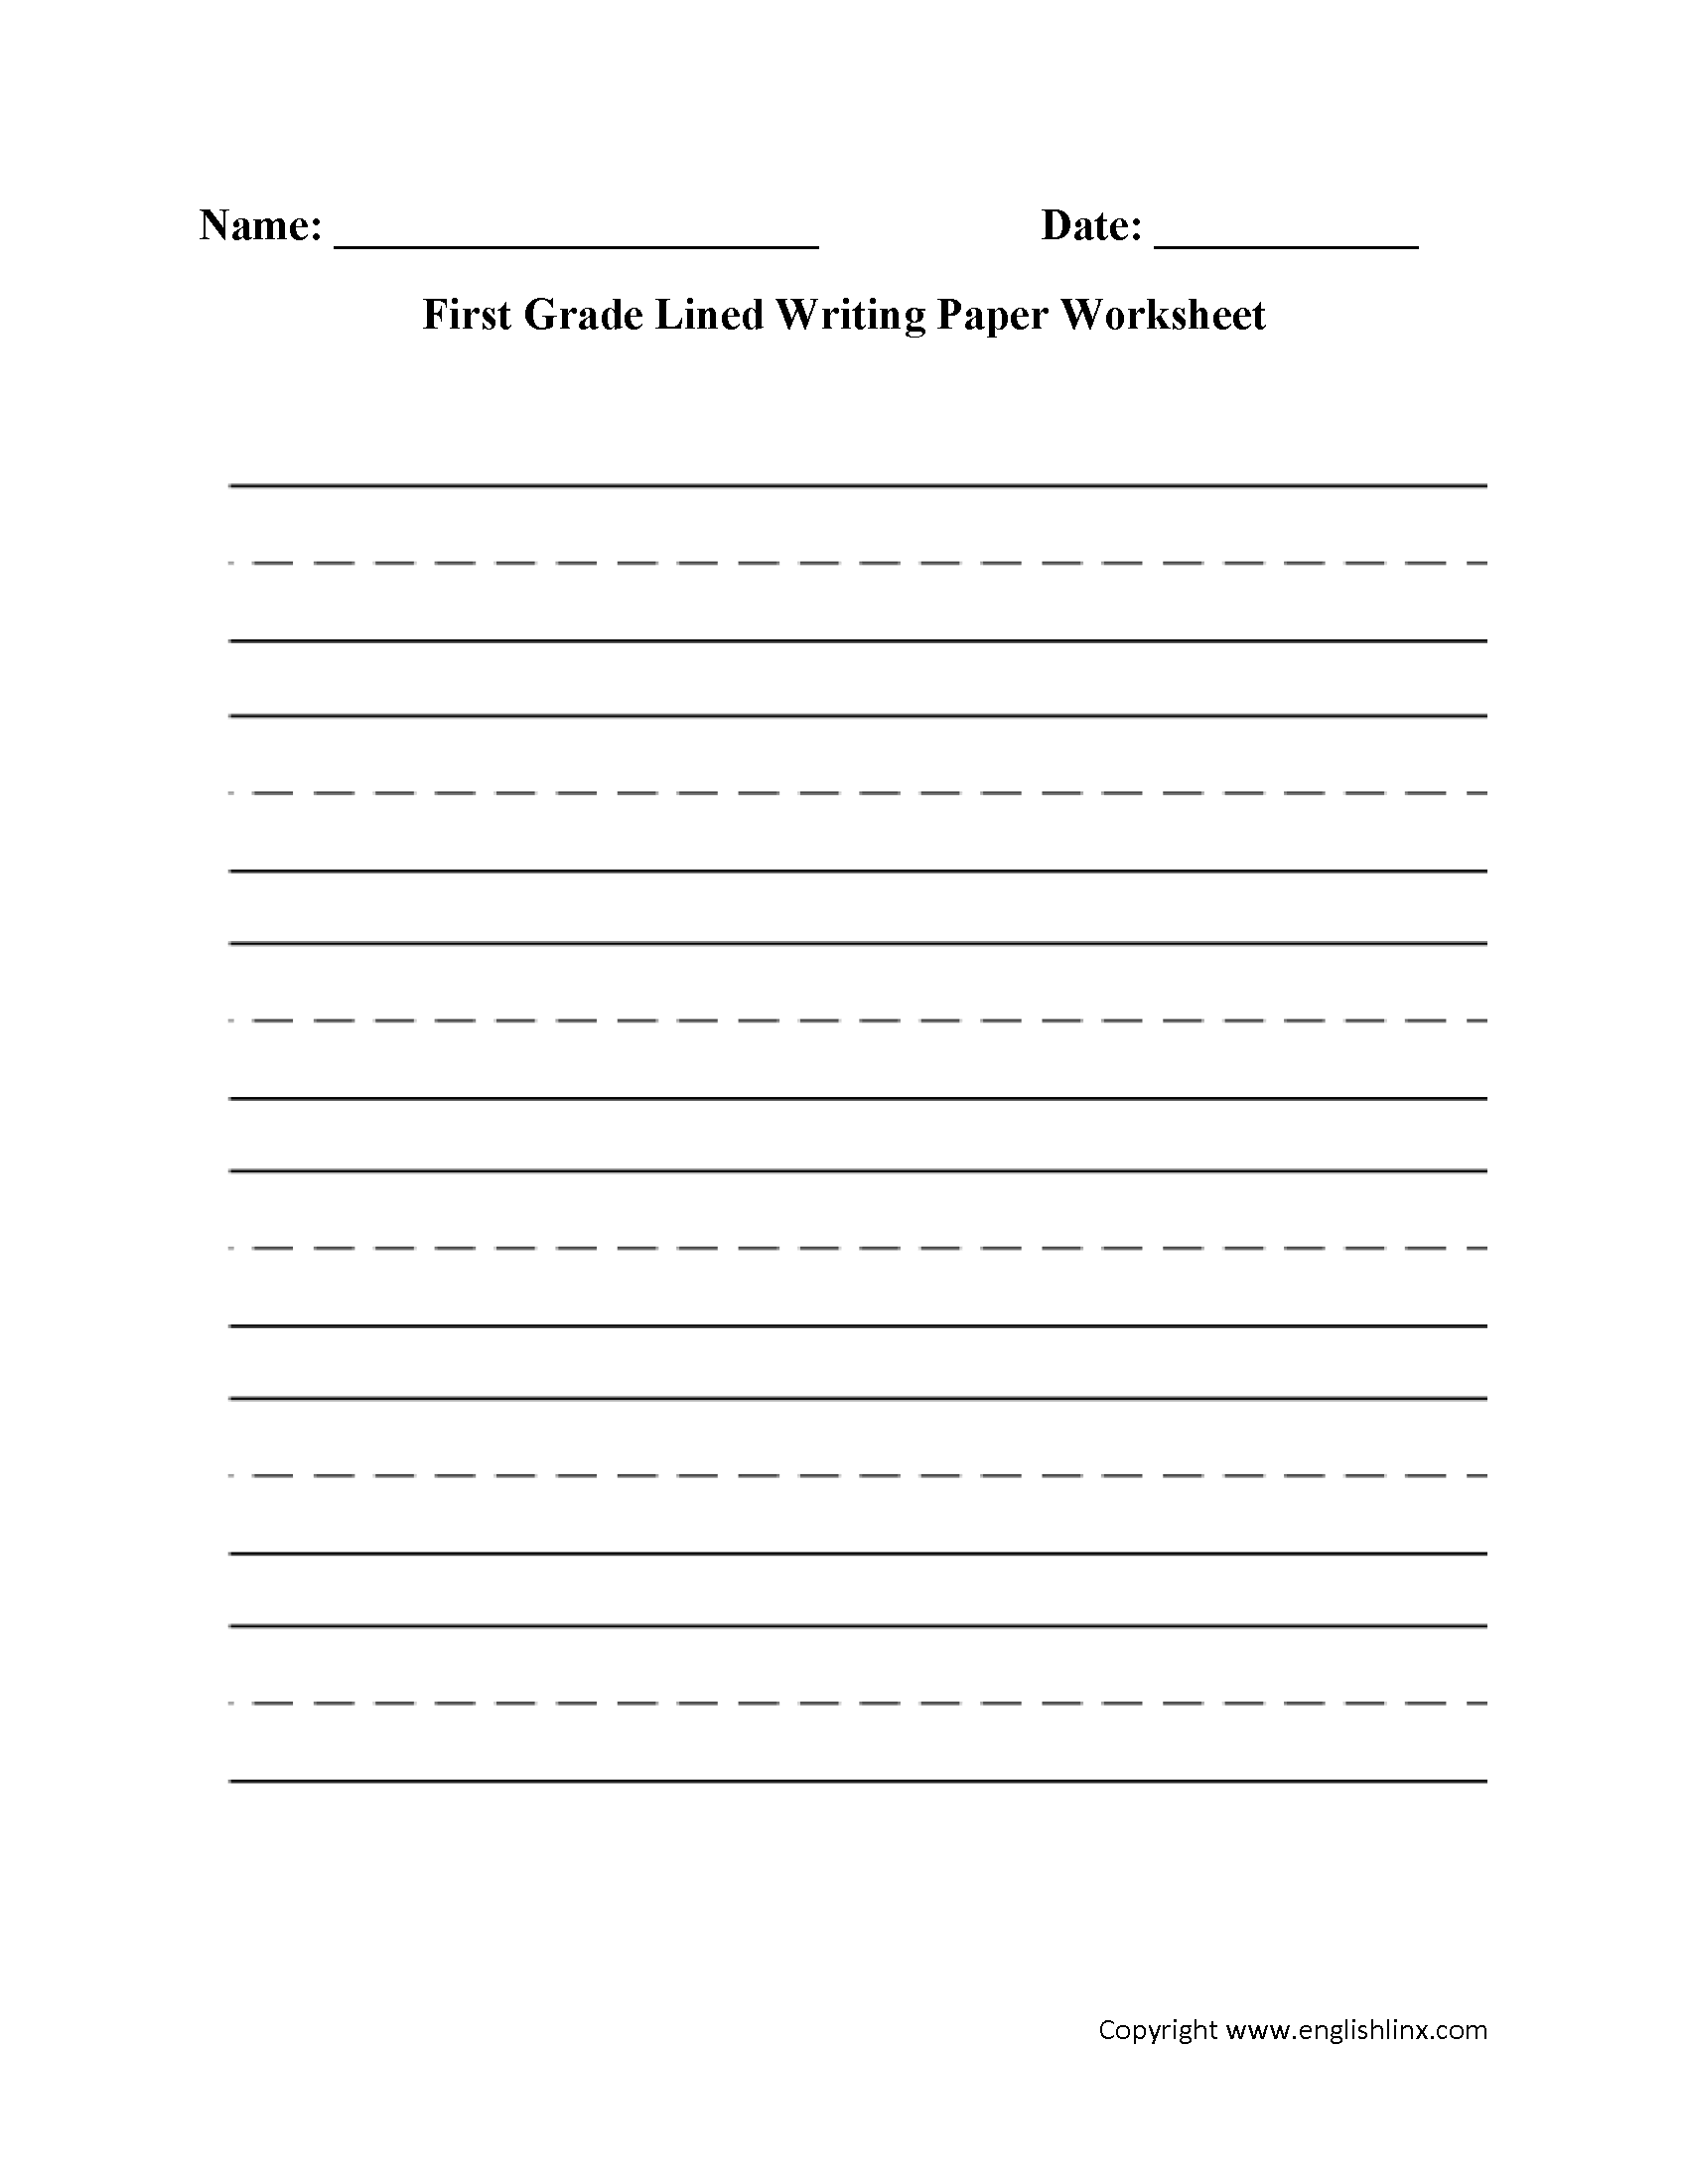 writing worksheets lined writing paper worksheets. Black Bedroom Furniture Sets. Home Design Ideas